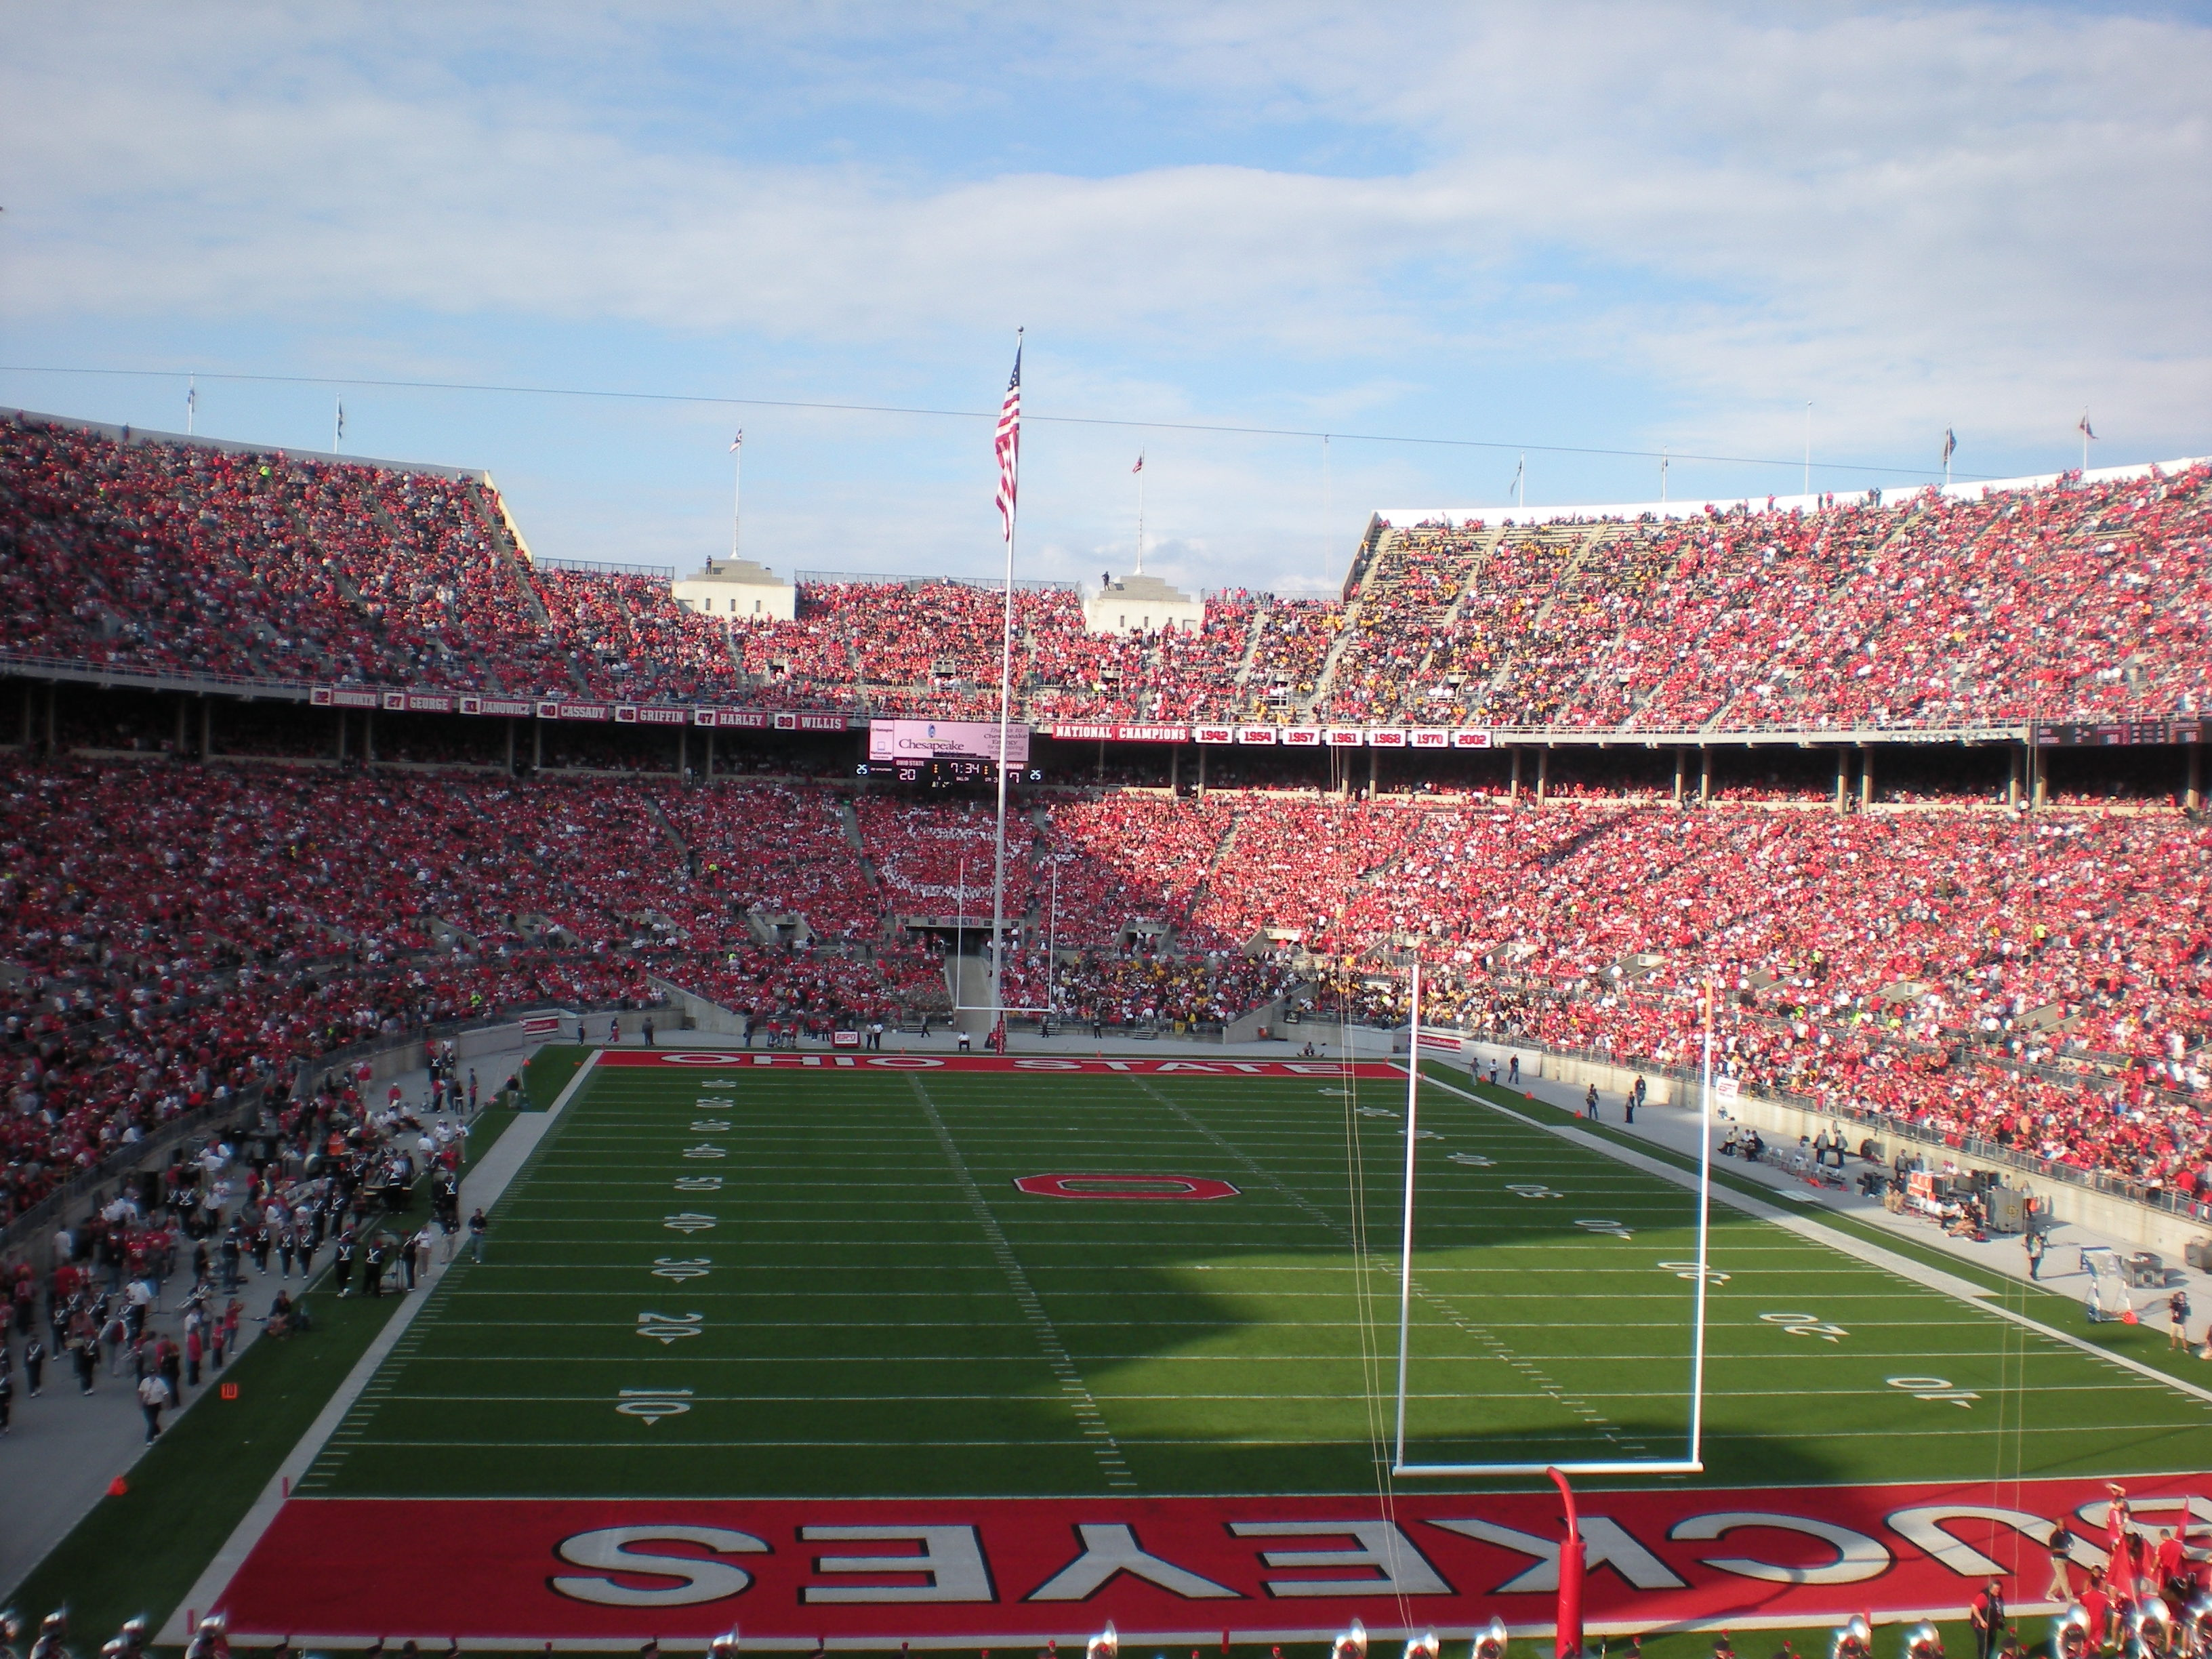 Ohio Stadium – Ohio State Buckeyes | Stadium Journey